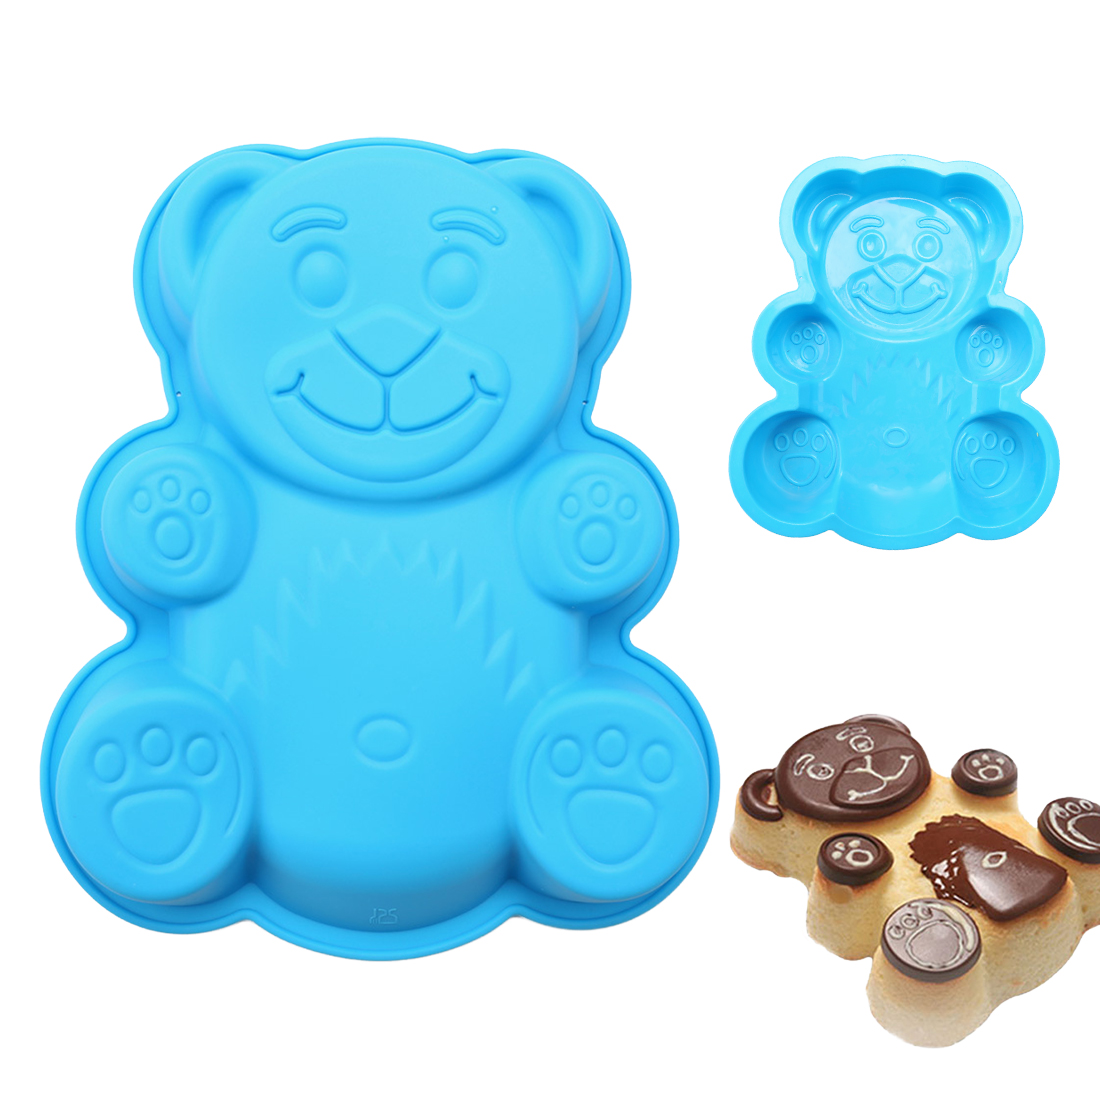 Soap Mould 1PC Cartoon Bear Shape Fondant Molds Cake Decorating Tools Chocolate Soap Mold Cake Stencils Kitchen DIY Tools